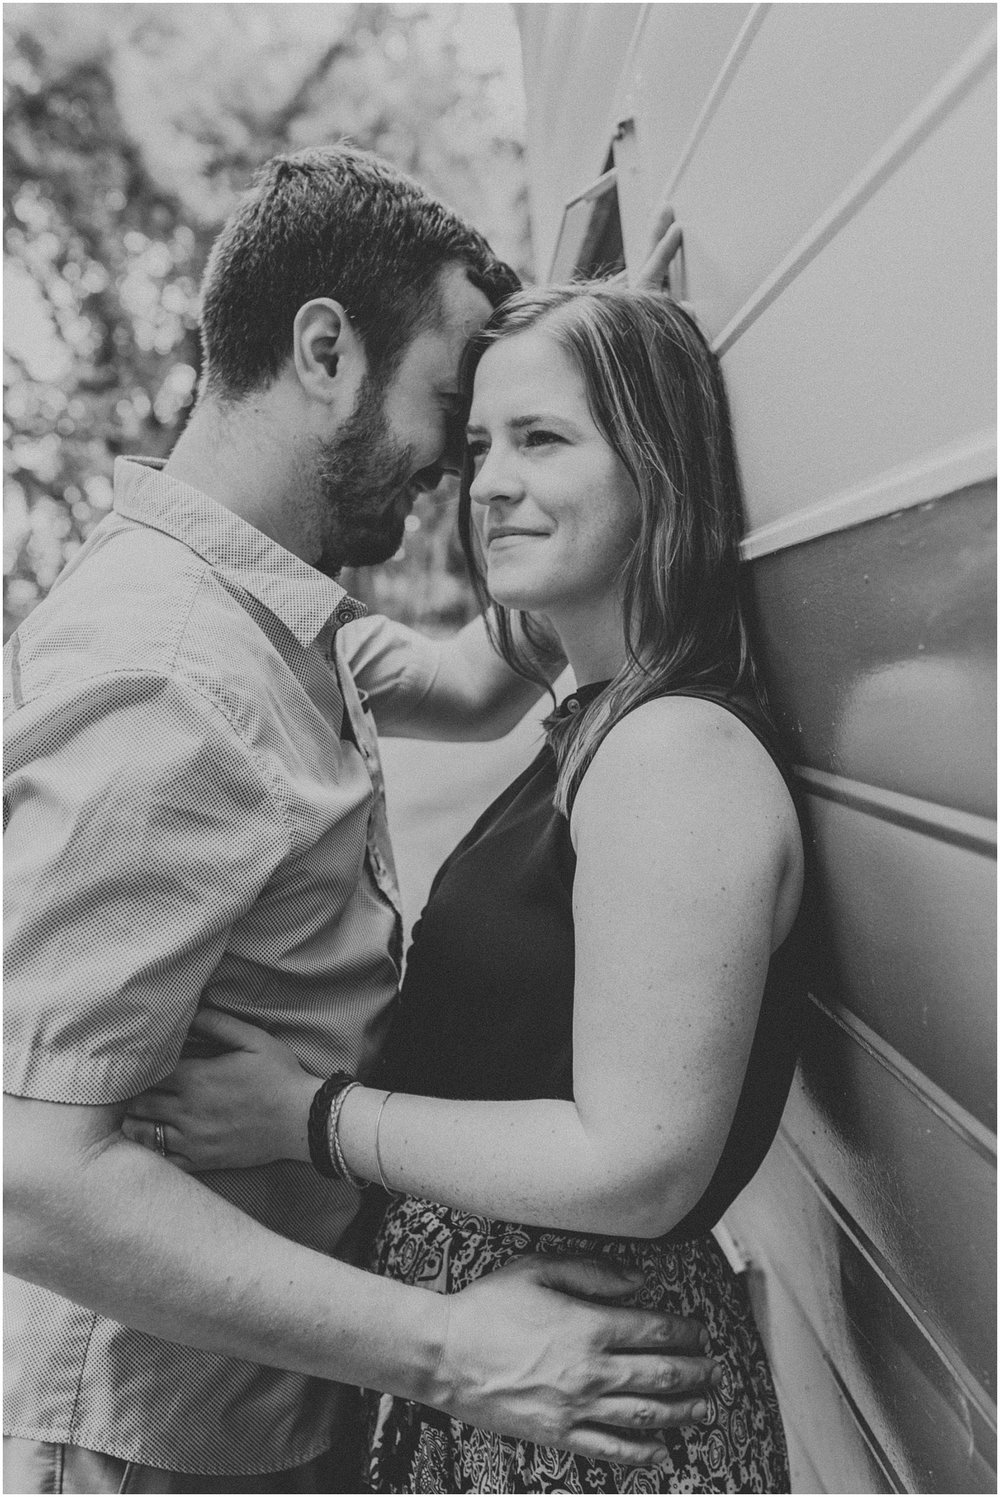 lifestyle-anniversary-engagement-photo session-rv-camping-road trip-vintage trailer-camping-outdoor photos_0233.jpg